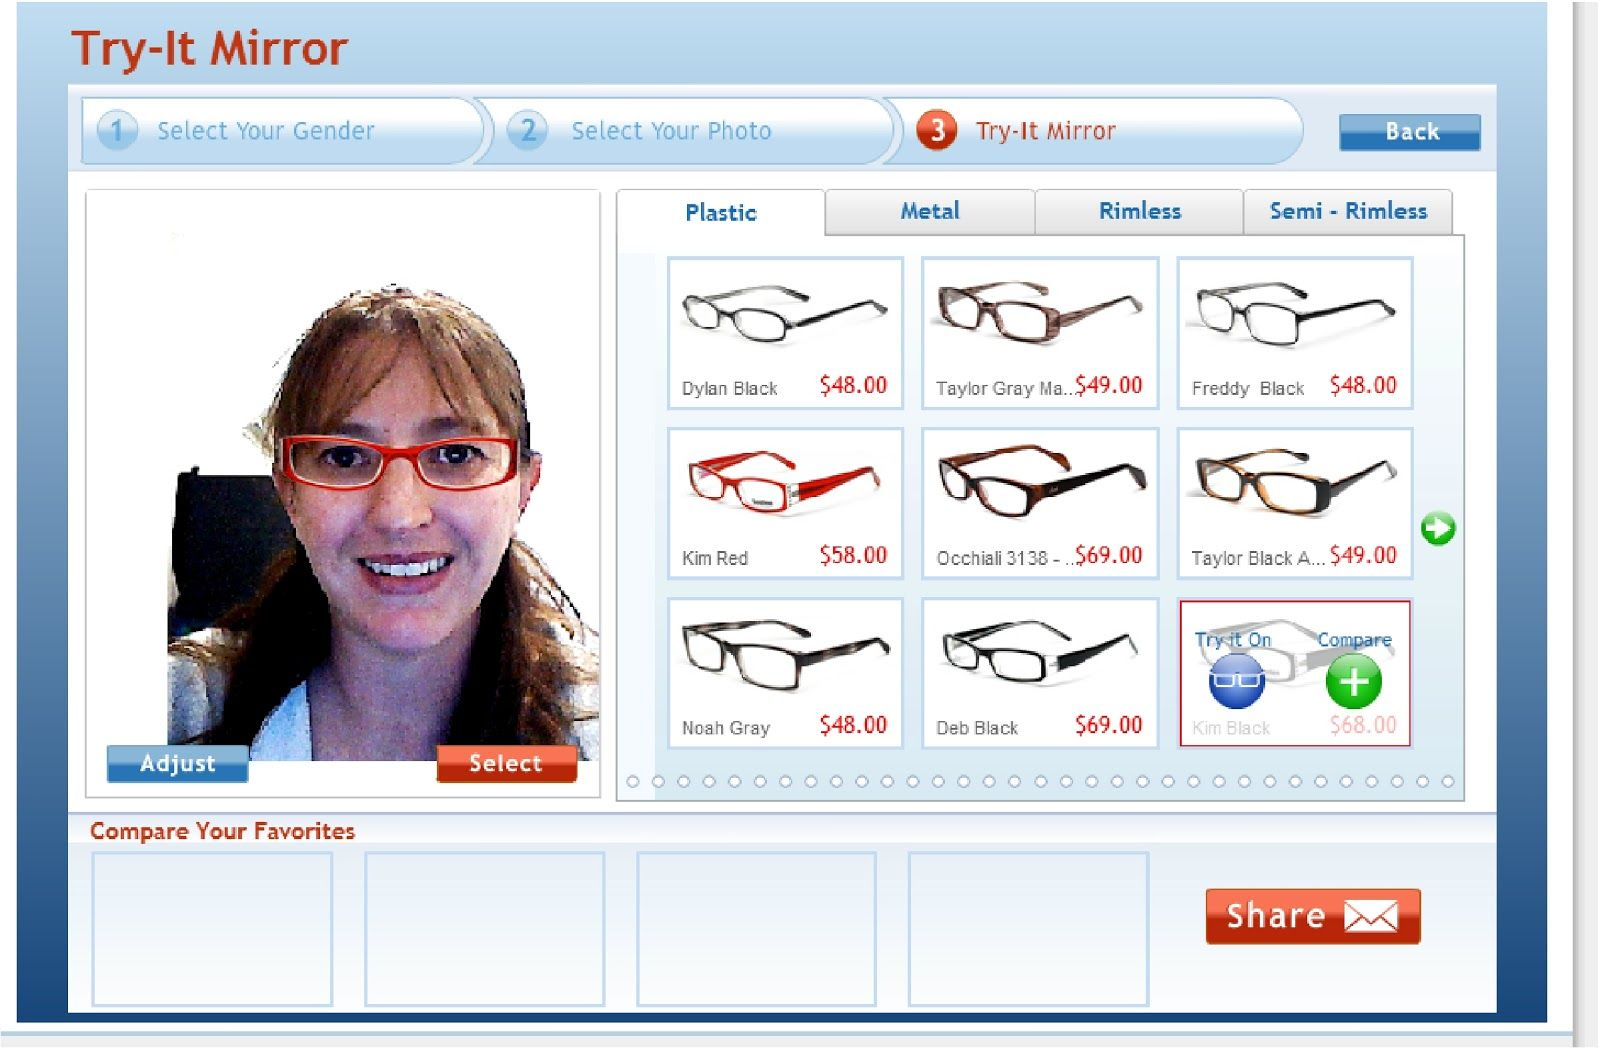 17e1eab4d96 Kims Kandy Kreations  GlassesUSA has a virtual optician   a Virtual Mirror  where you can take a picture of yourself   try on all their glasses!